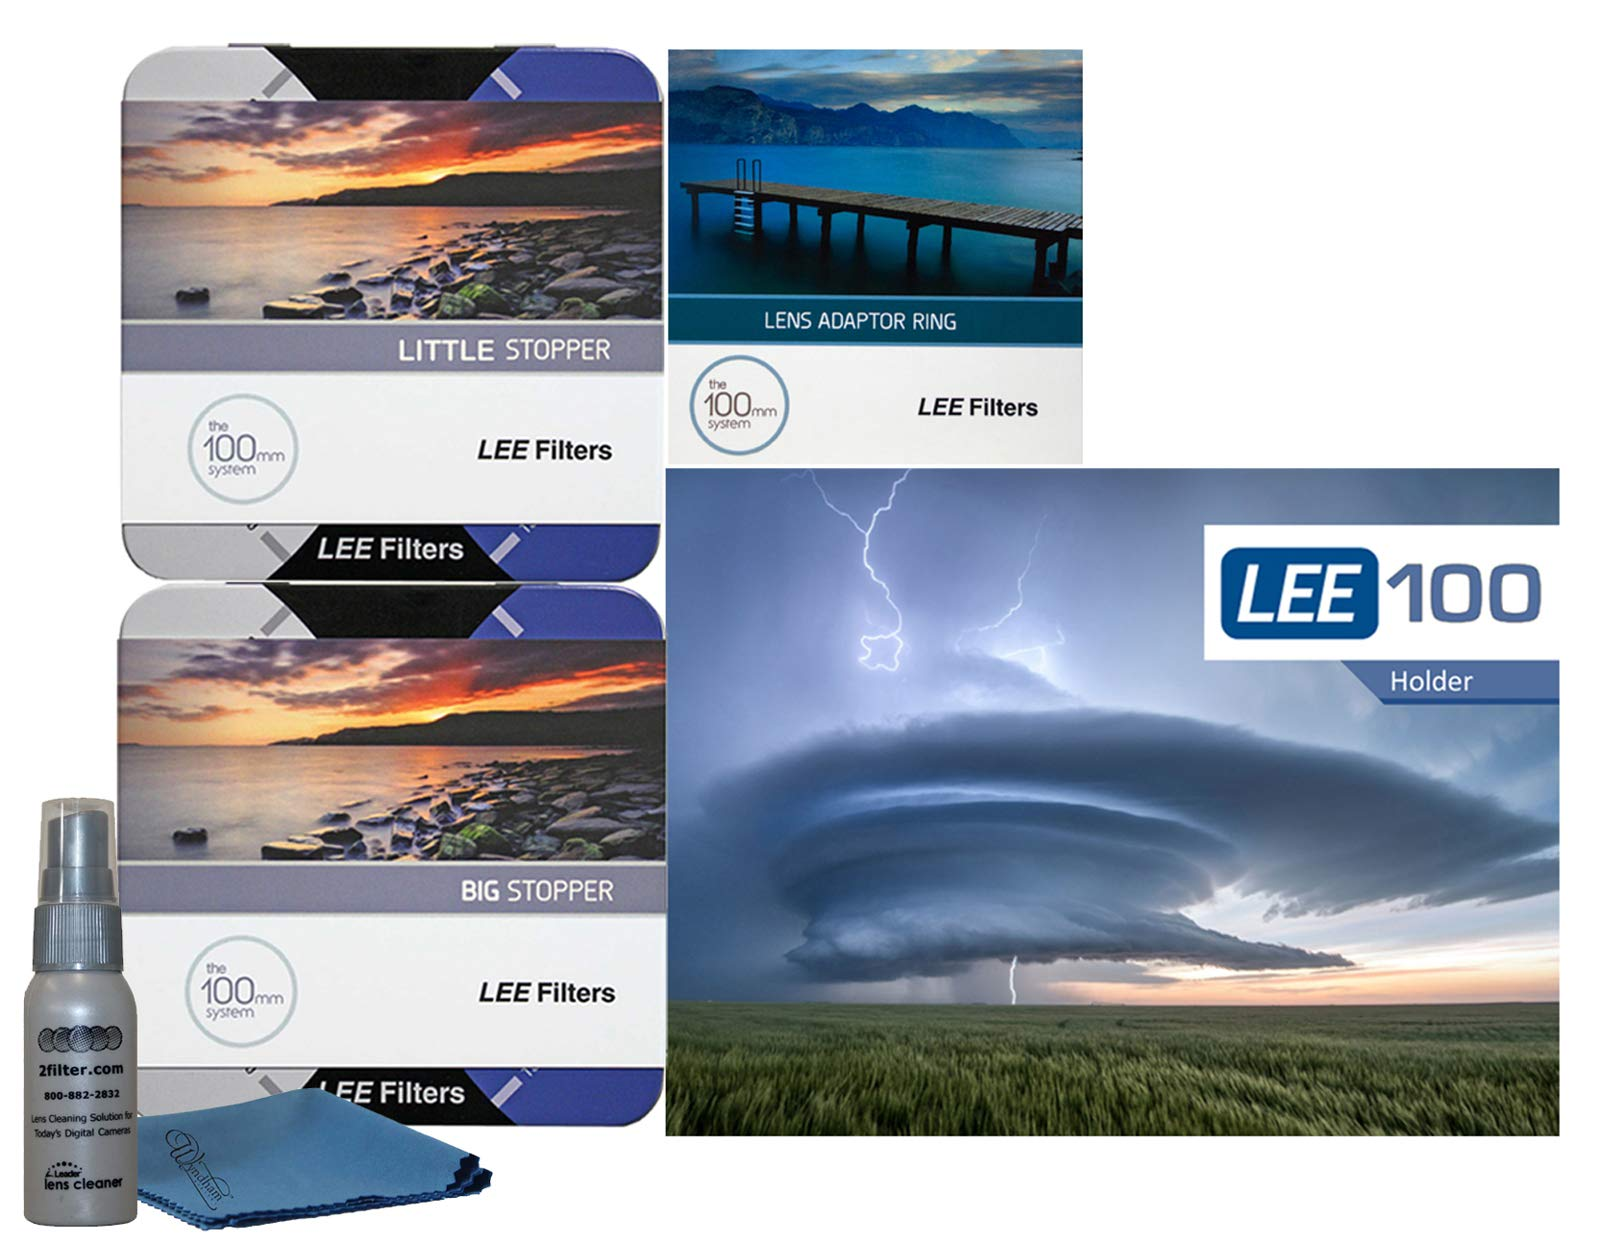 LEE Filters LEE100 77mm Premium Long Exposure Kit - Lee Filters LEE100 Filter Holder, LEE 100mm Big and Little Stopper, 77mm Wide Angle Adapter Ring by Lee Filters